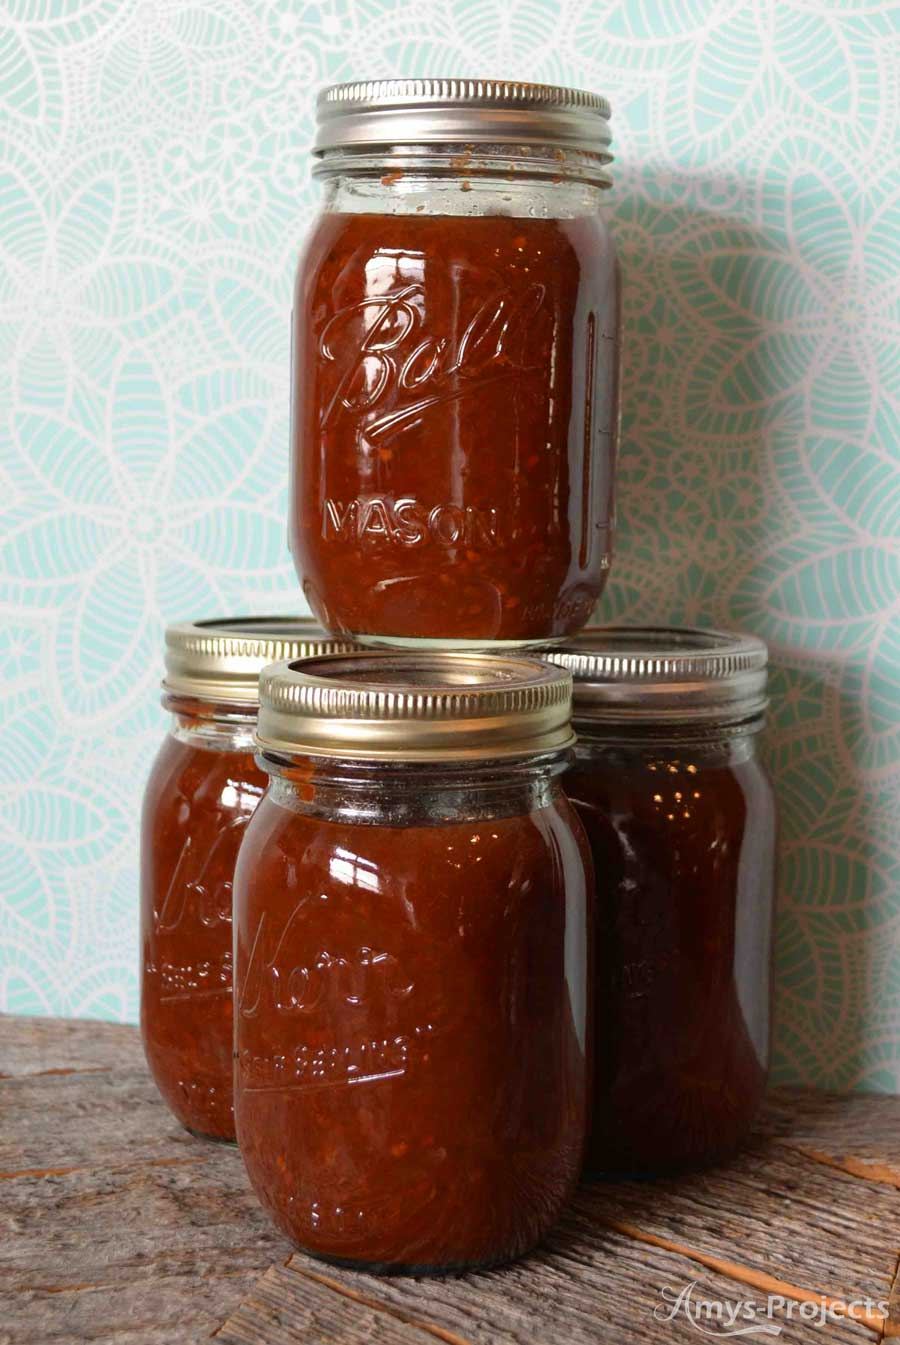 Delicious recipe for fresh sweet chili sauce. We love chili sauce on our meatloaf and